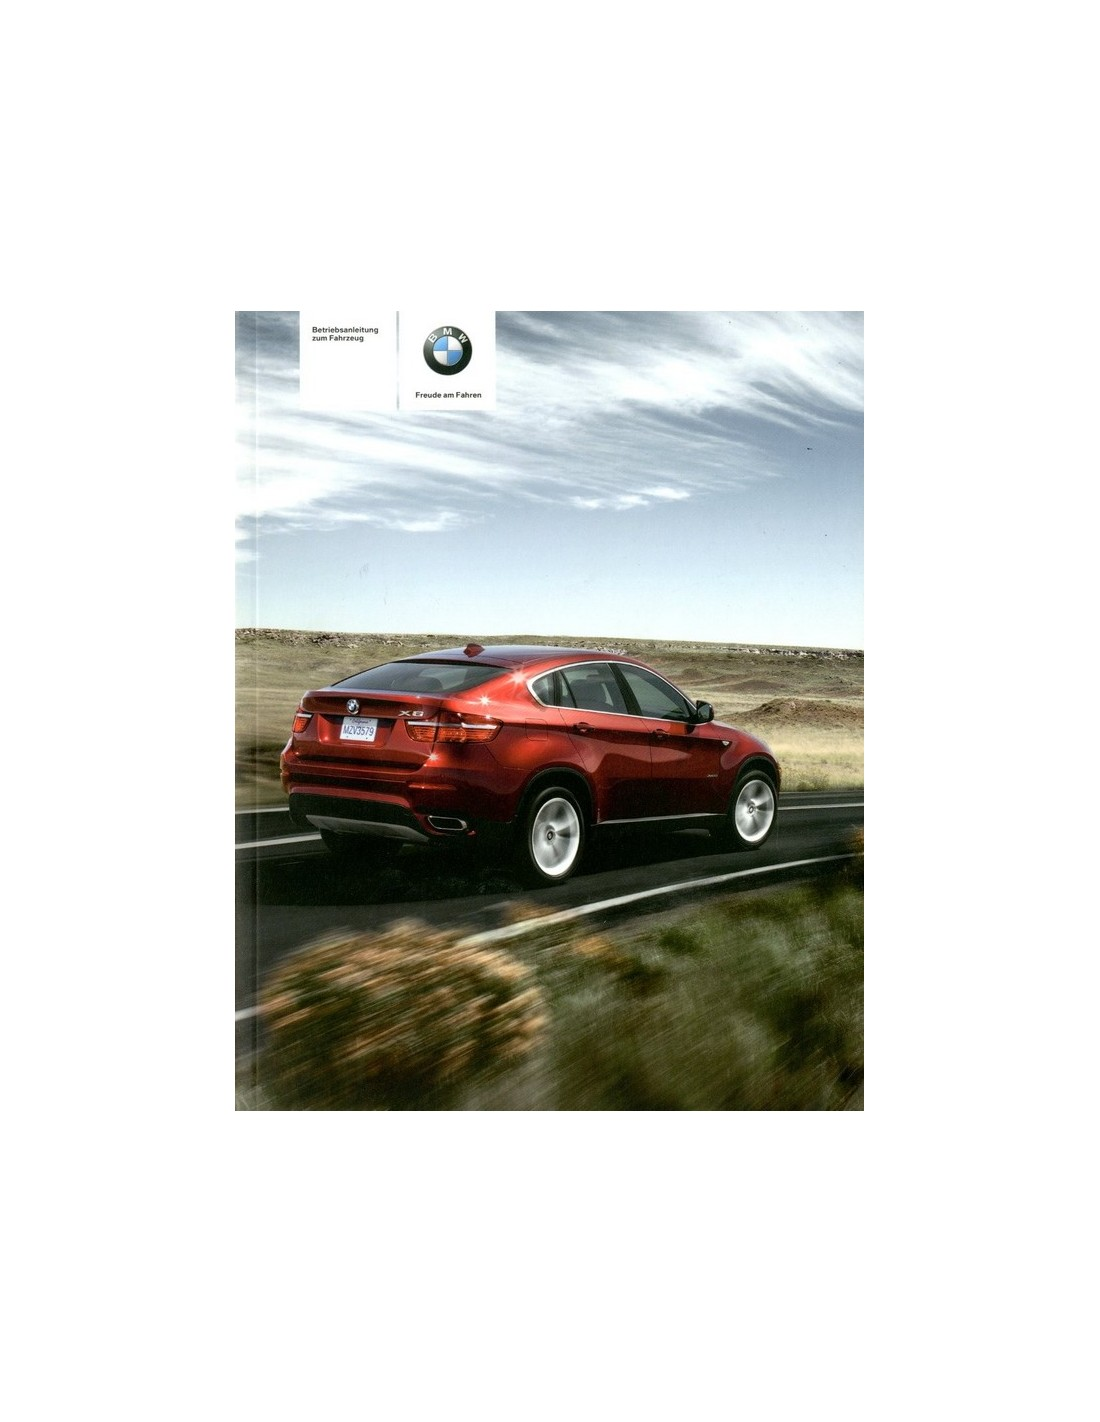 Bmw X6 Price In Germany: 2009 BMW X5 & X6 OWNERS MANUAL HANDBOOK GERMAN